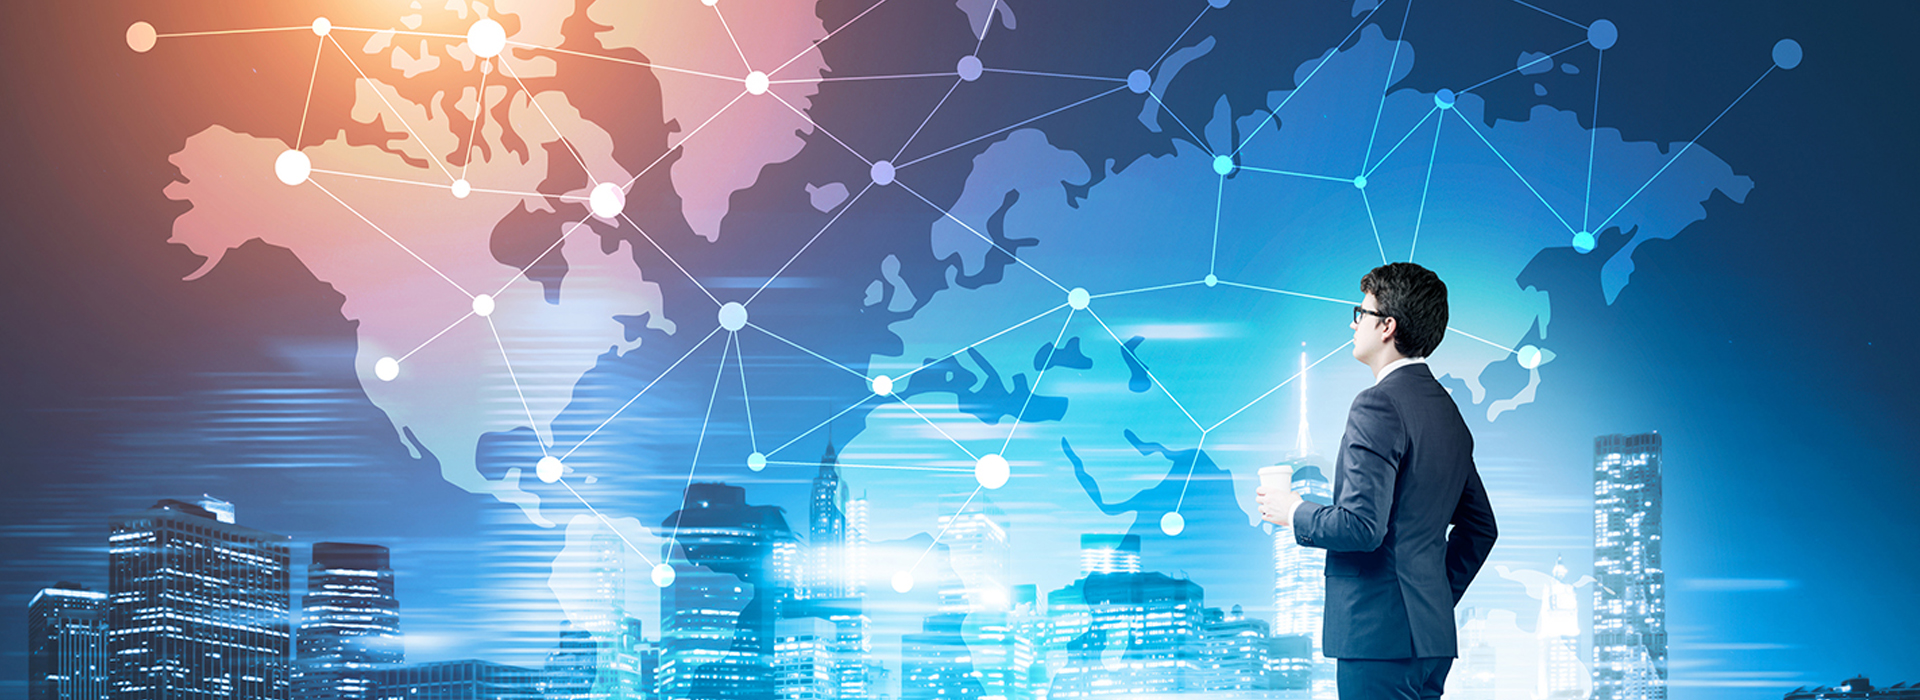 HAVE CAPACITY TO <span>MANAGE </span><br><span>LARGE IP PORTFOLIO </span>IN <br>BOTH REGIONAL AND GLOBAL <span>MARKETS.</span>